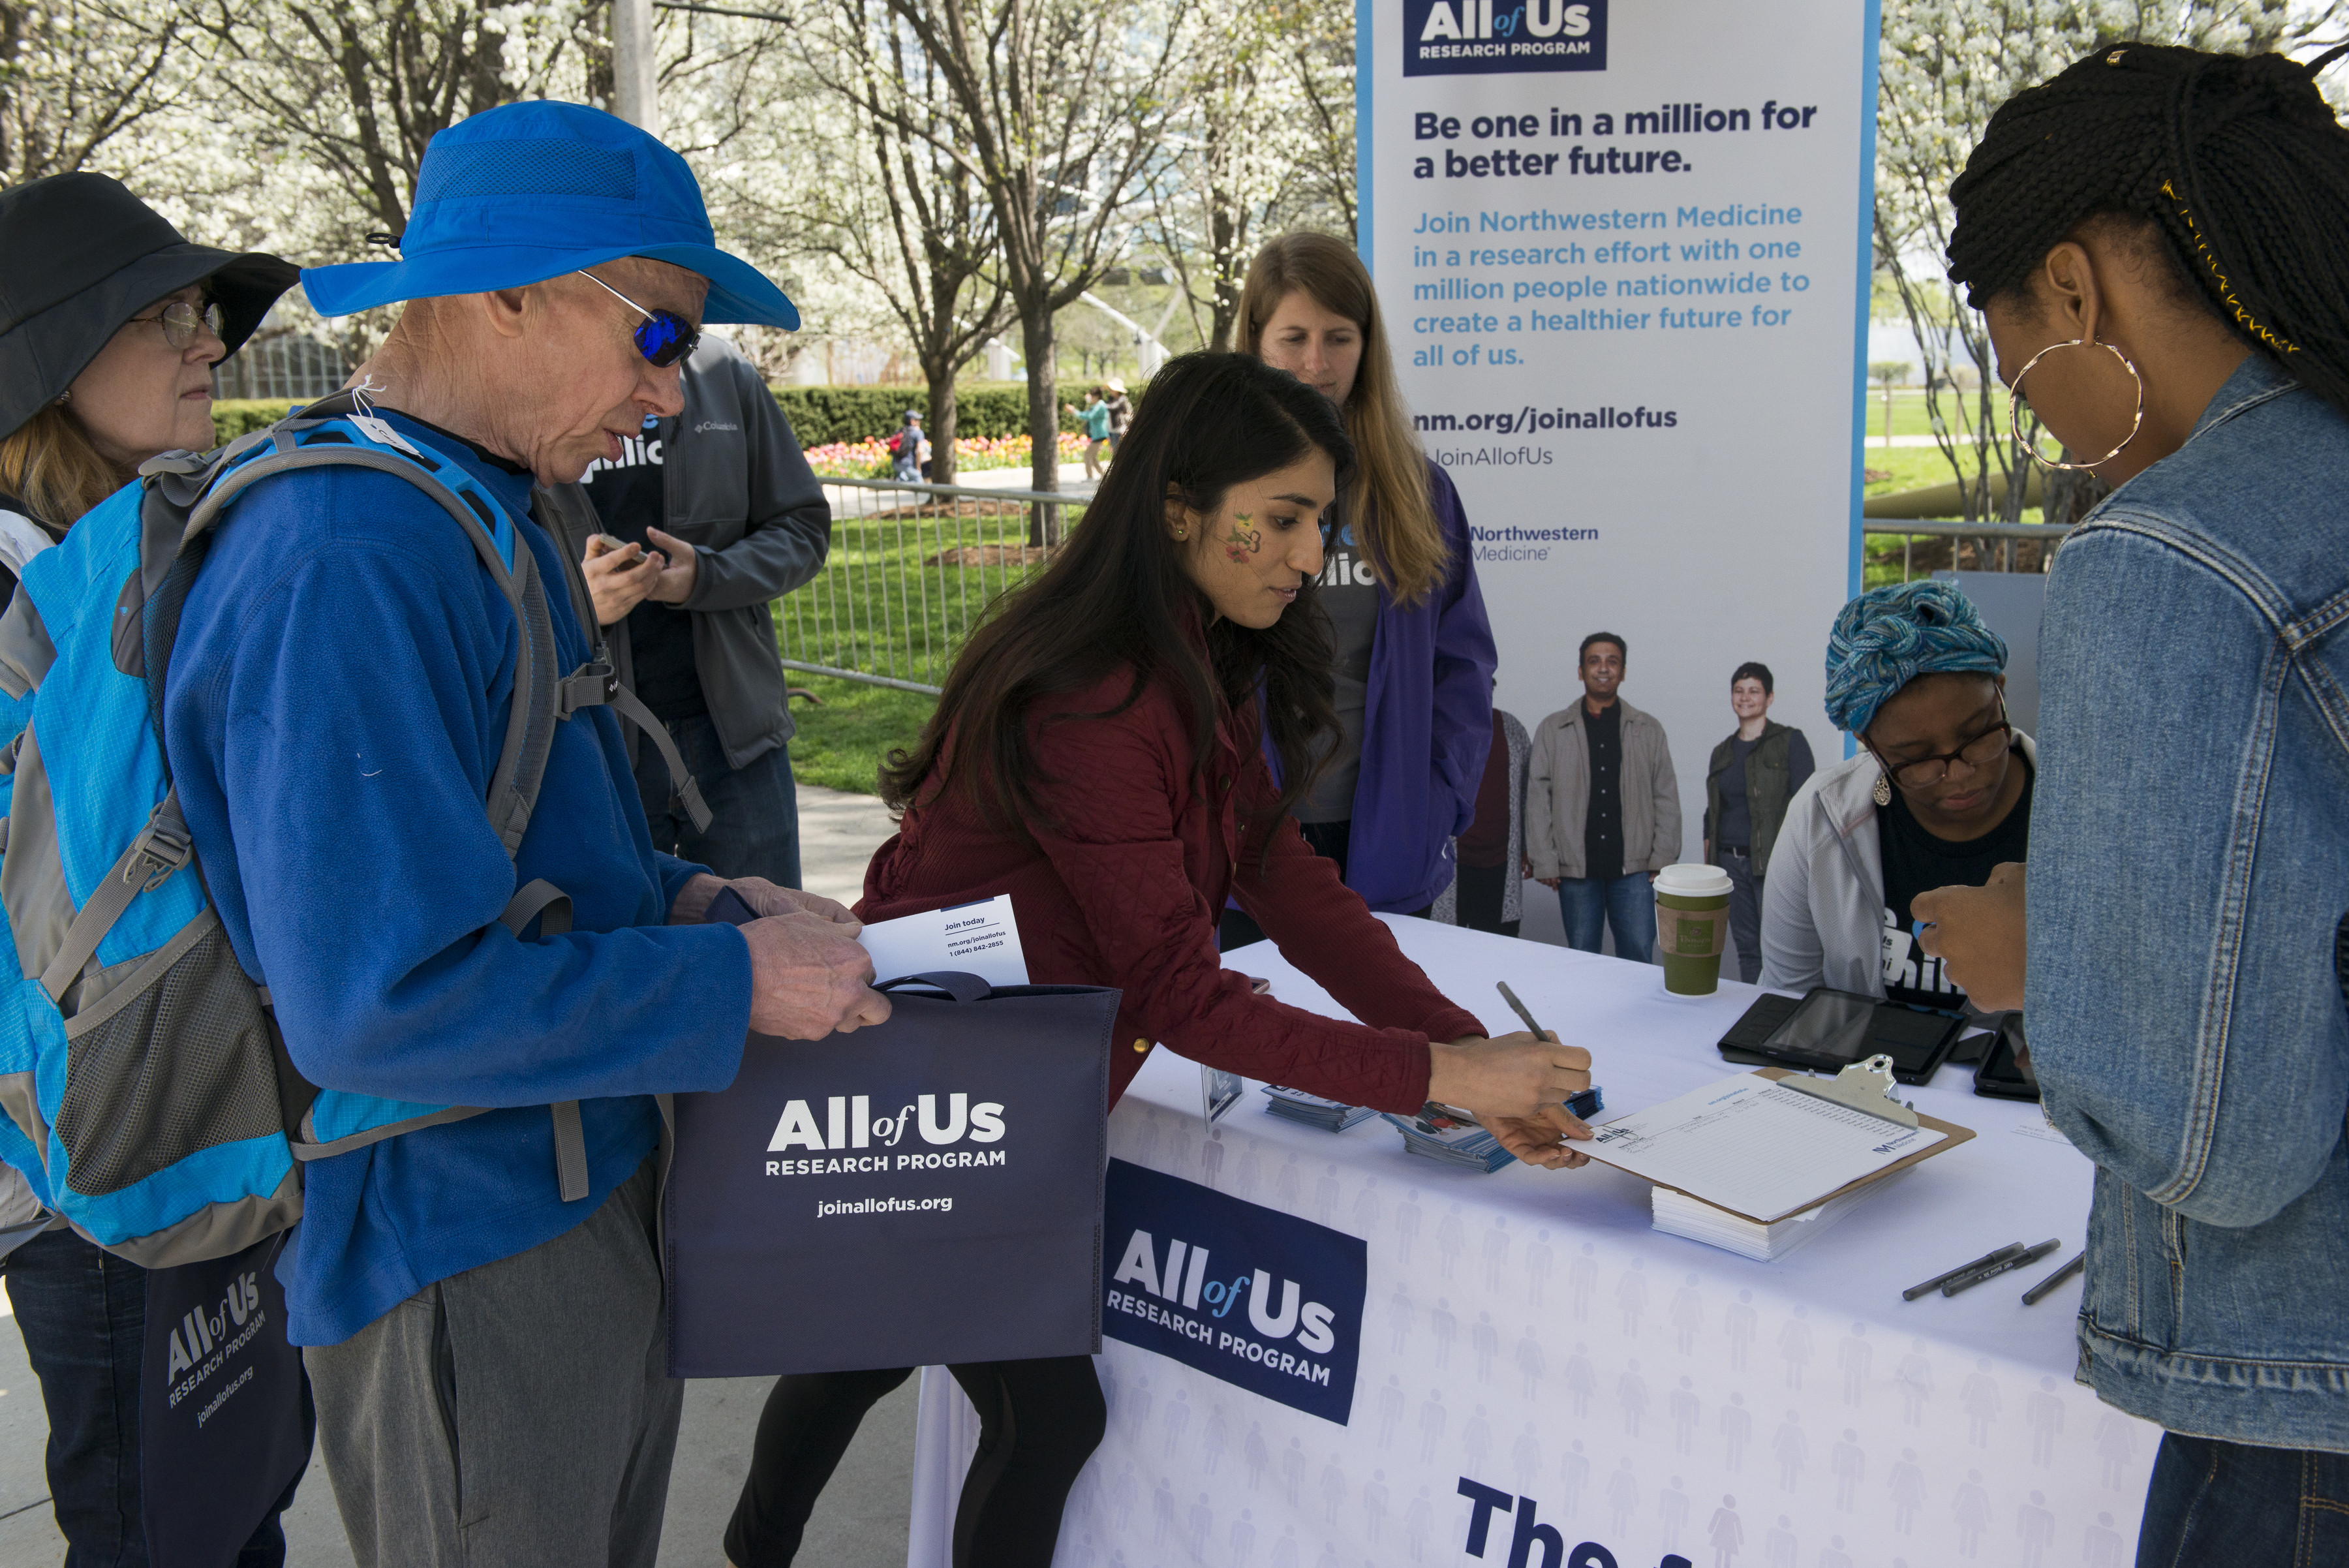 Community members come together to raise awareness about the All of Us Research Program.